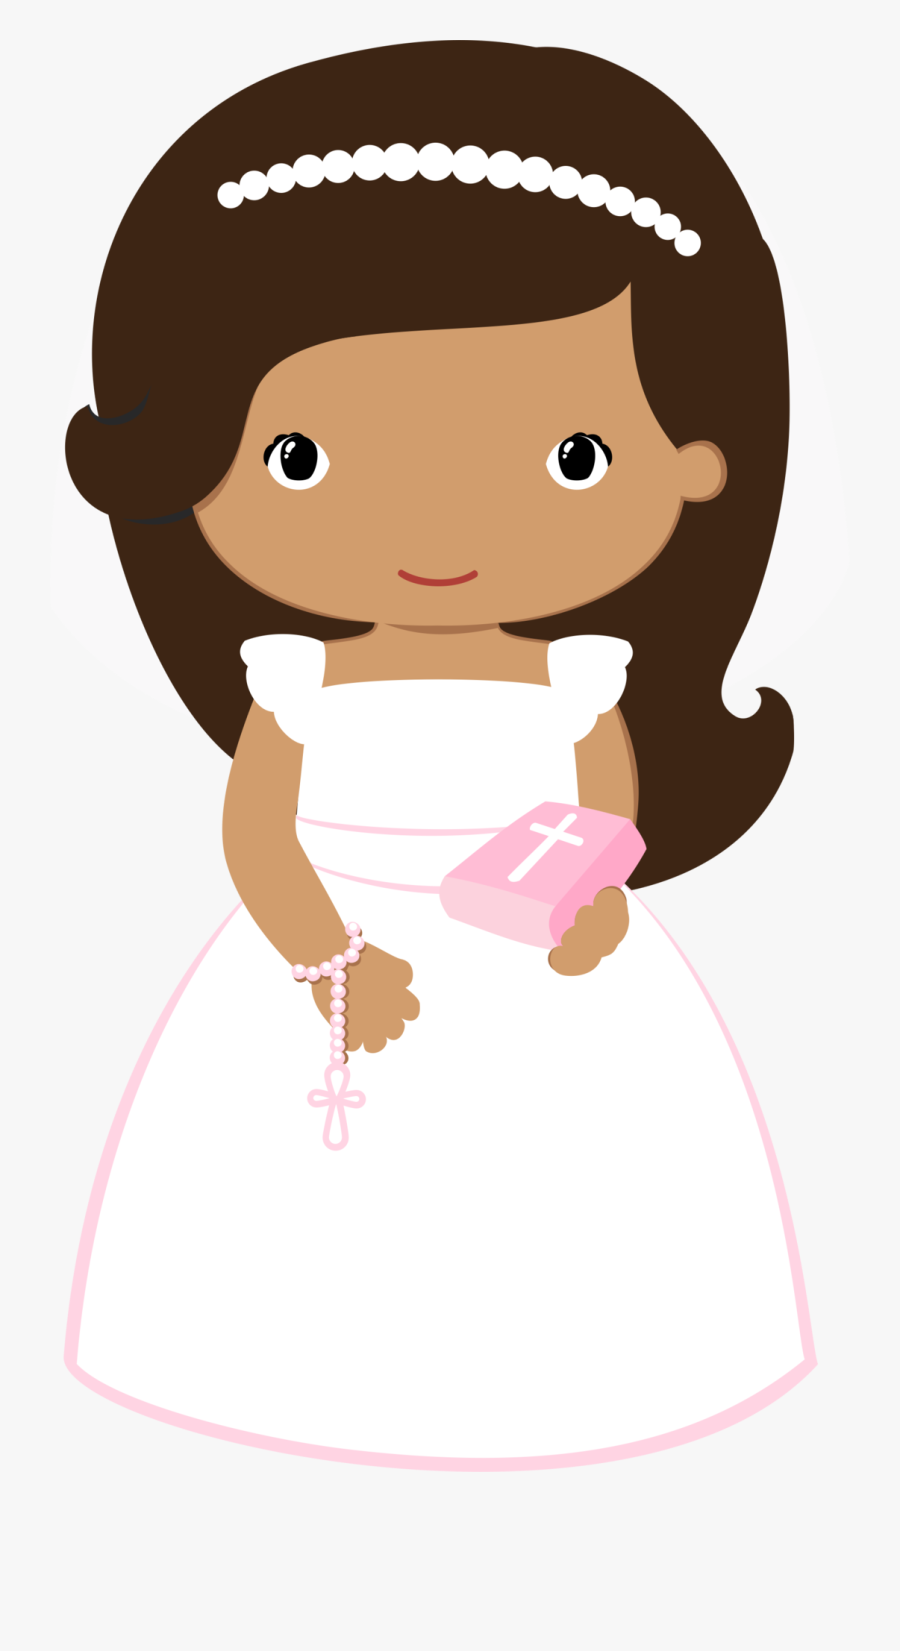 Transparent Someone Singing Clipart - First Communion Girl Clip Art, Transparent Clipart